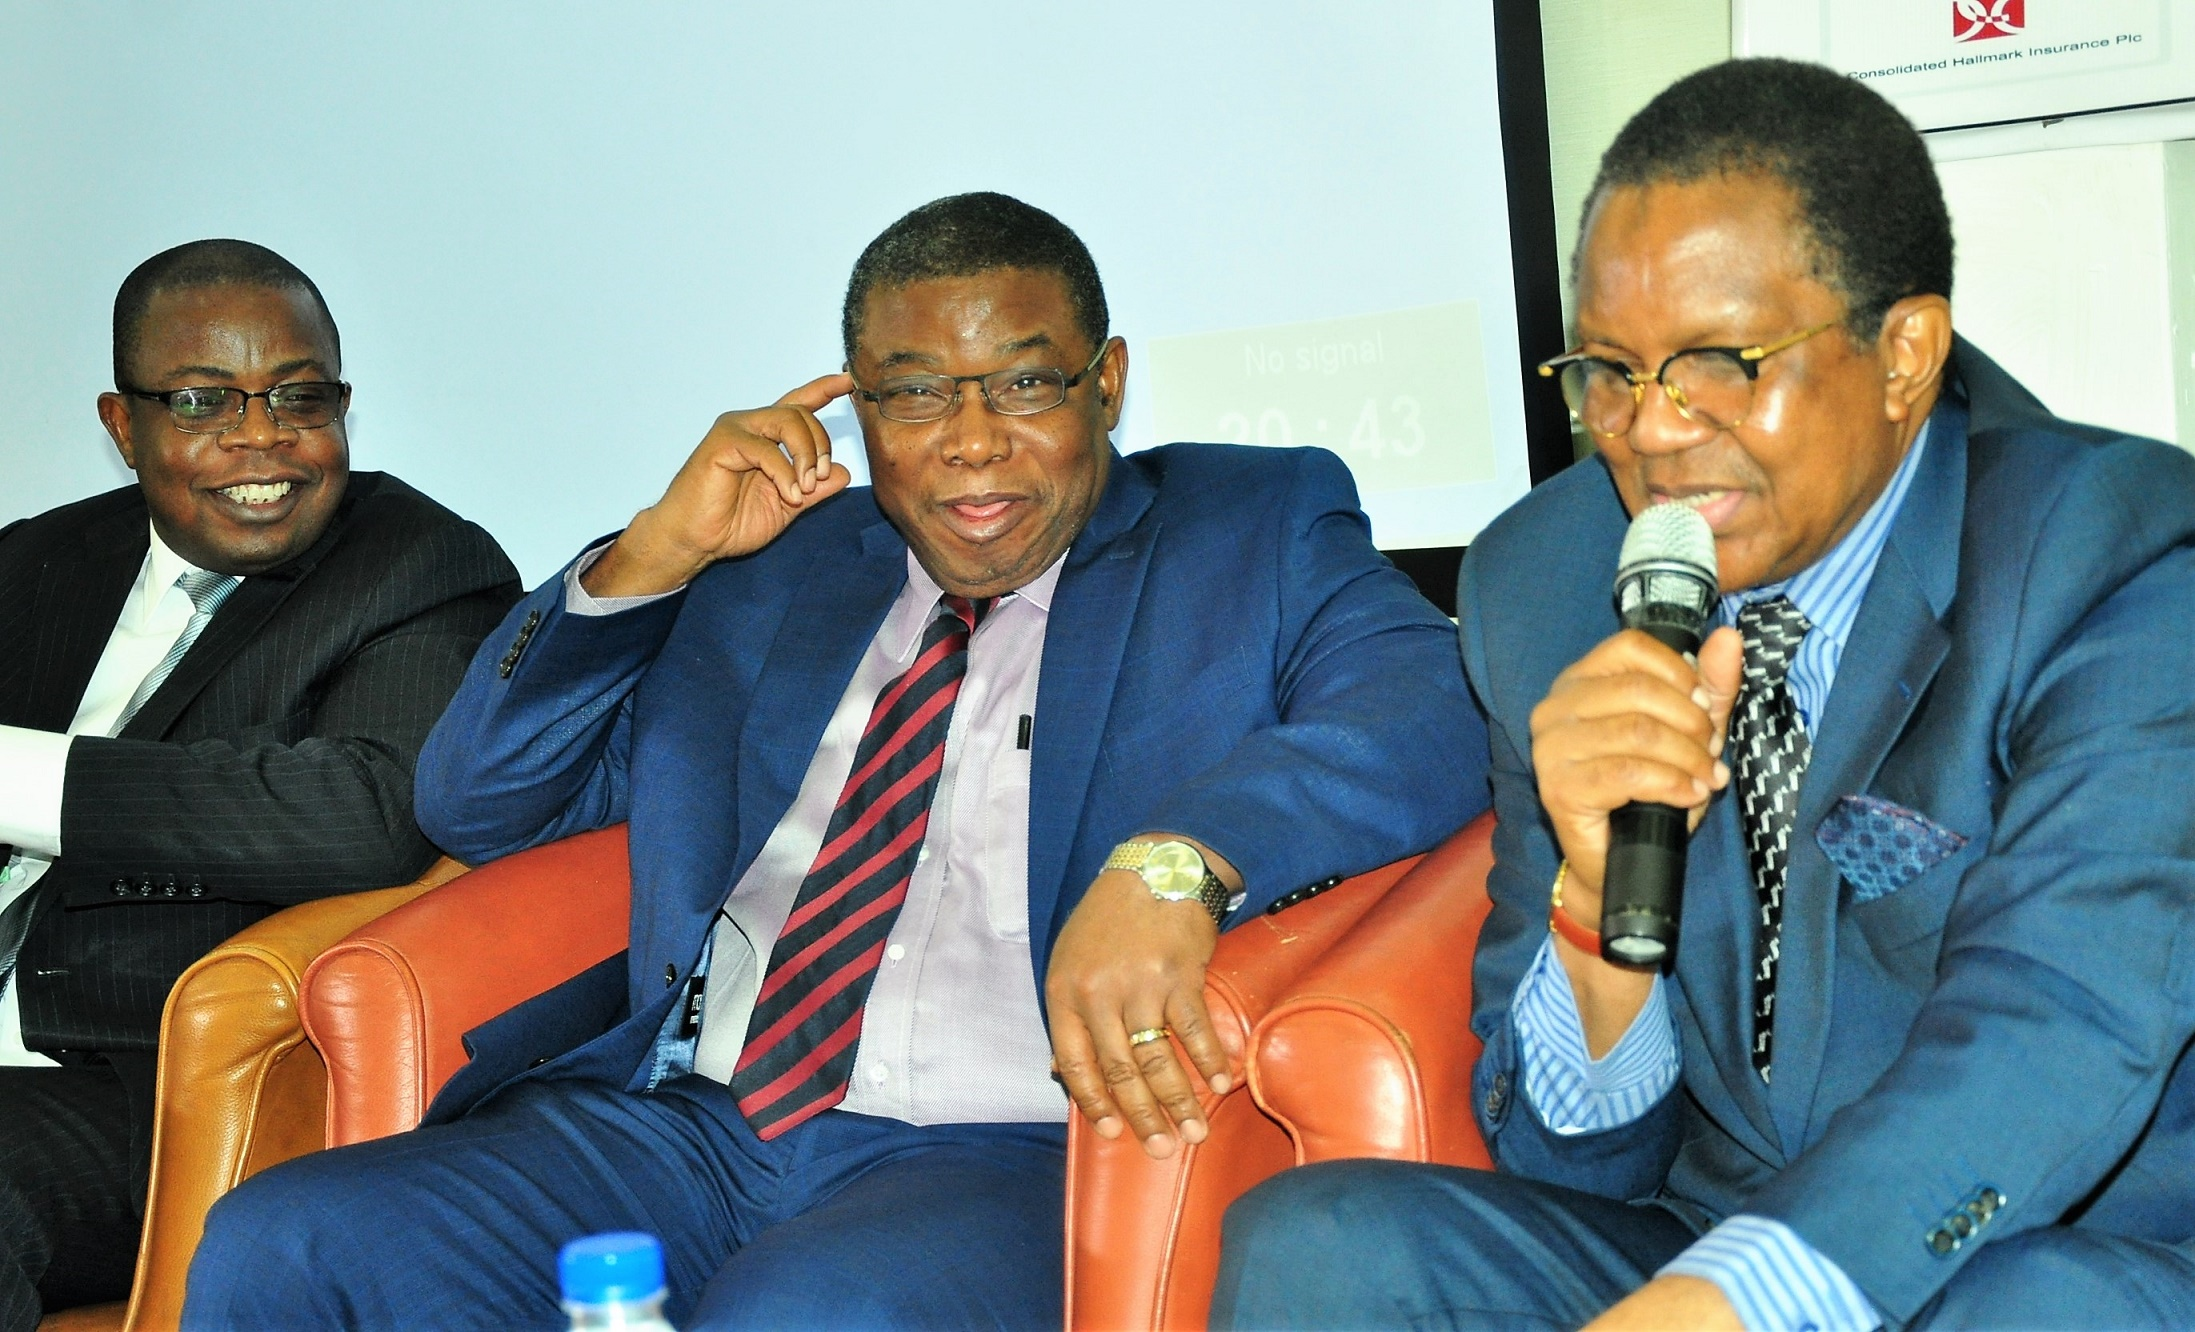 R-L:  Alhaji Bala Zakariya'u, past president, Chartered Insurance Institute of Nigeria and Chairman of occasion; Mr. George Onekhena, Deputy Commissioner, Finance and Administration, NAICOM, and Mr. Lana Loyinmi, Head Contribution & Bond Redemption, National Pension Commission, during the  3rd Annual National Conference of the National Association of Insurance and Pension Correspondents (NAIPCO) on The Role of Stakeholders in Developing Insurance and Pension Sectors held in Lagos on Thursday. August 09, 2018.